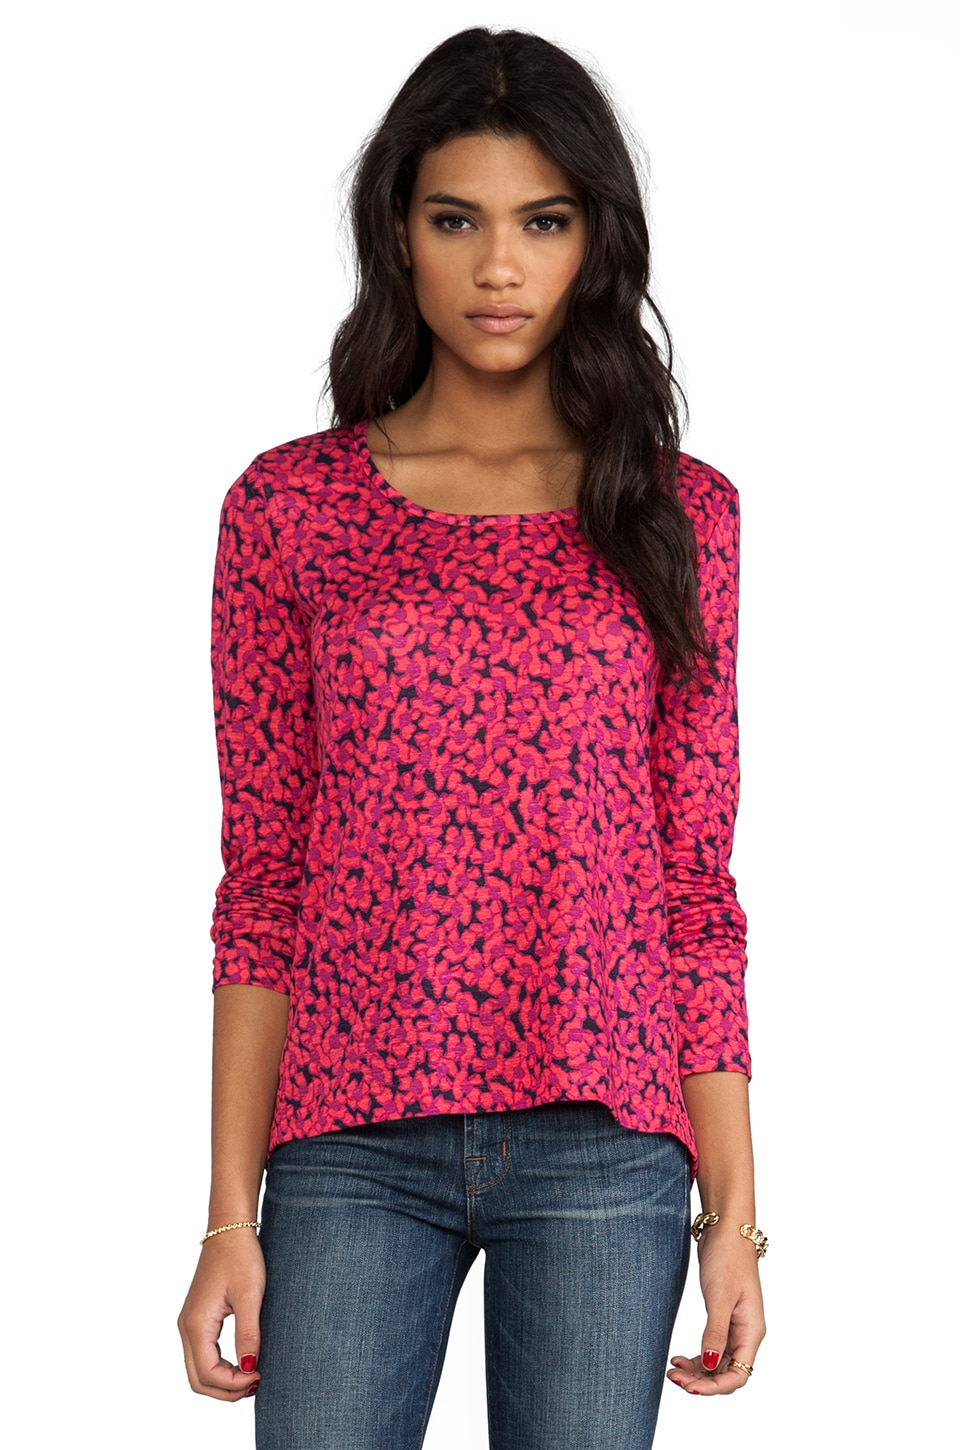 Marc by Marc Jacobs Bianca Mix Top in Neon Pink Multi